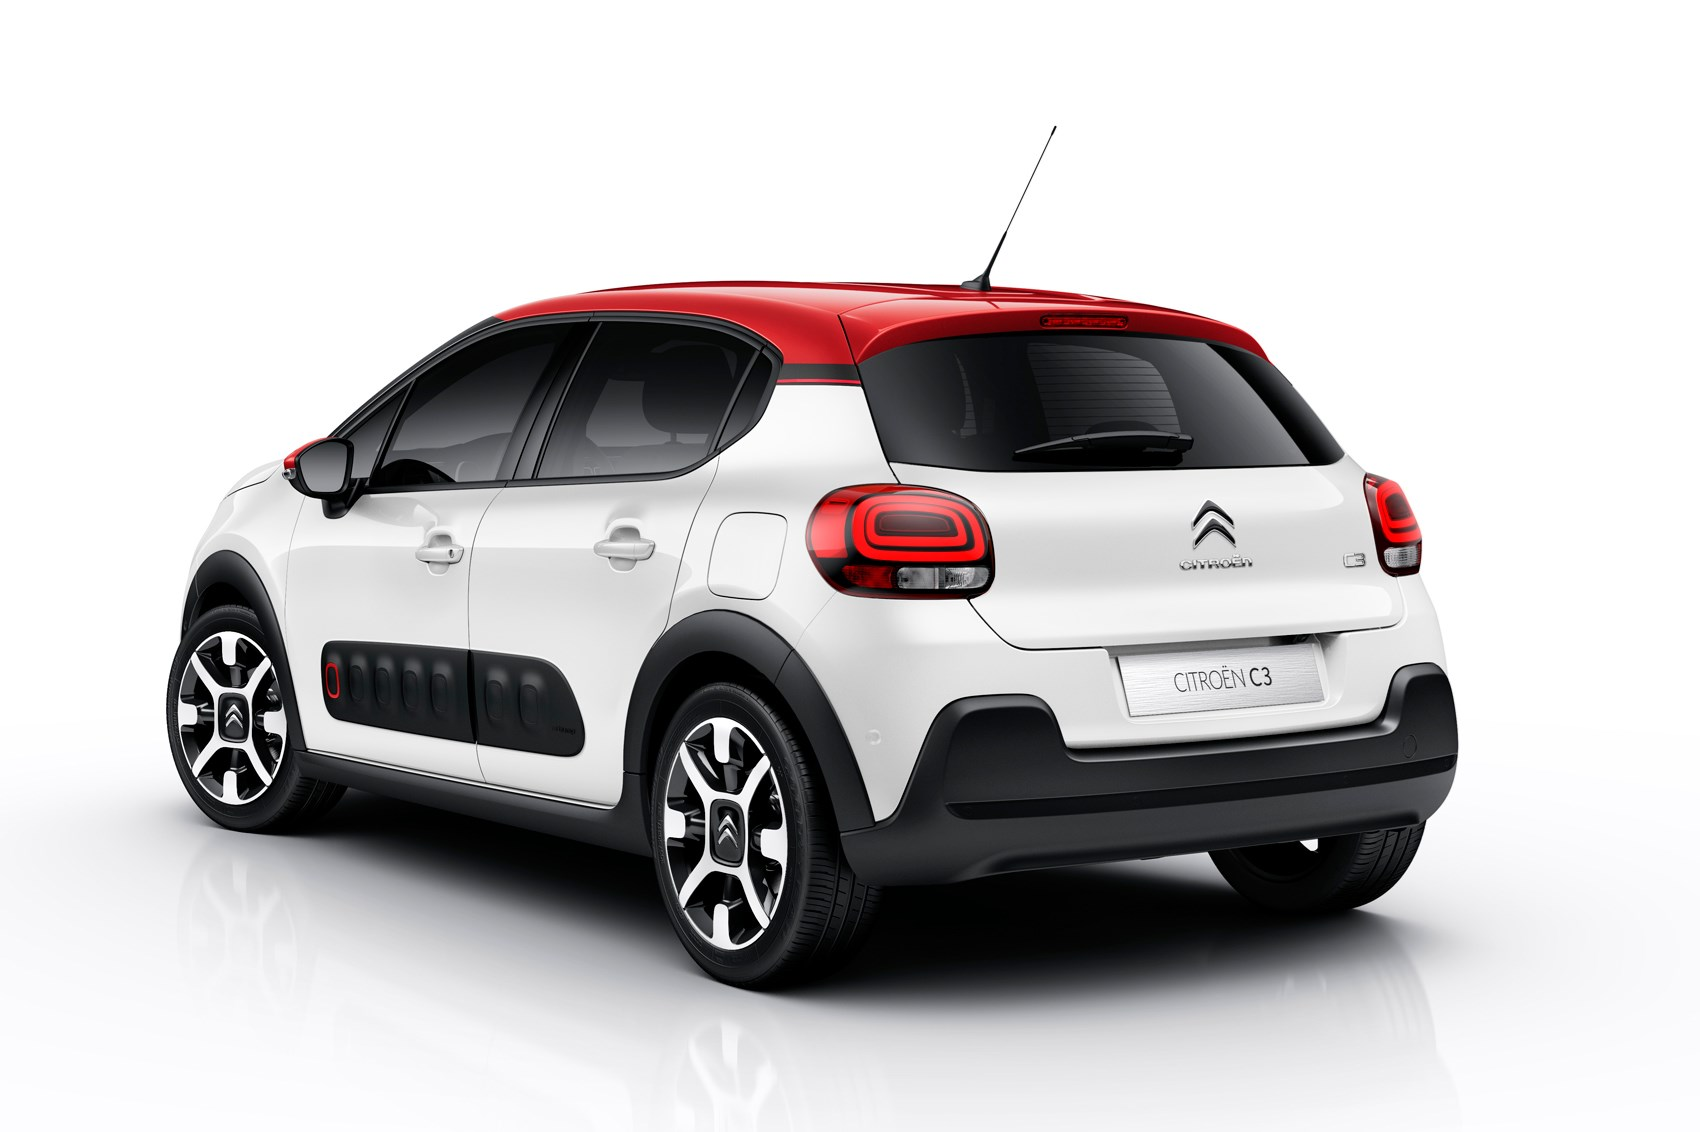 new 2017 citroen c3 revealed it 39 s cactus take 2 by car magazine. Black Bedroom Furniture Sets. Home Design Ideas